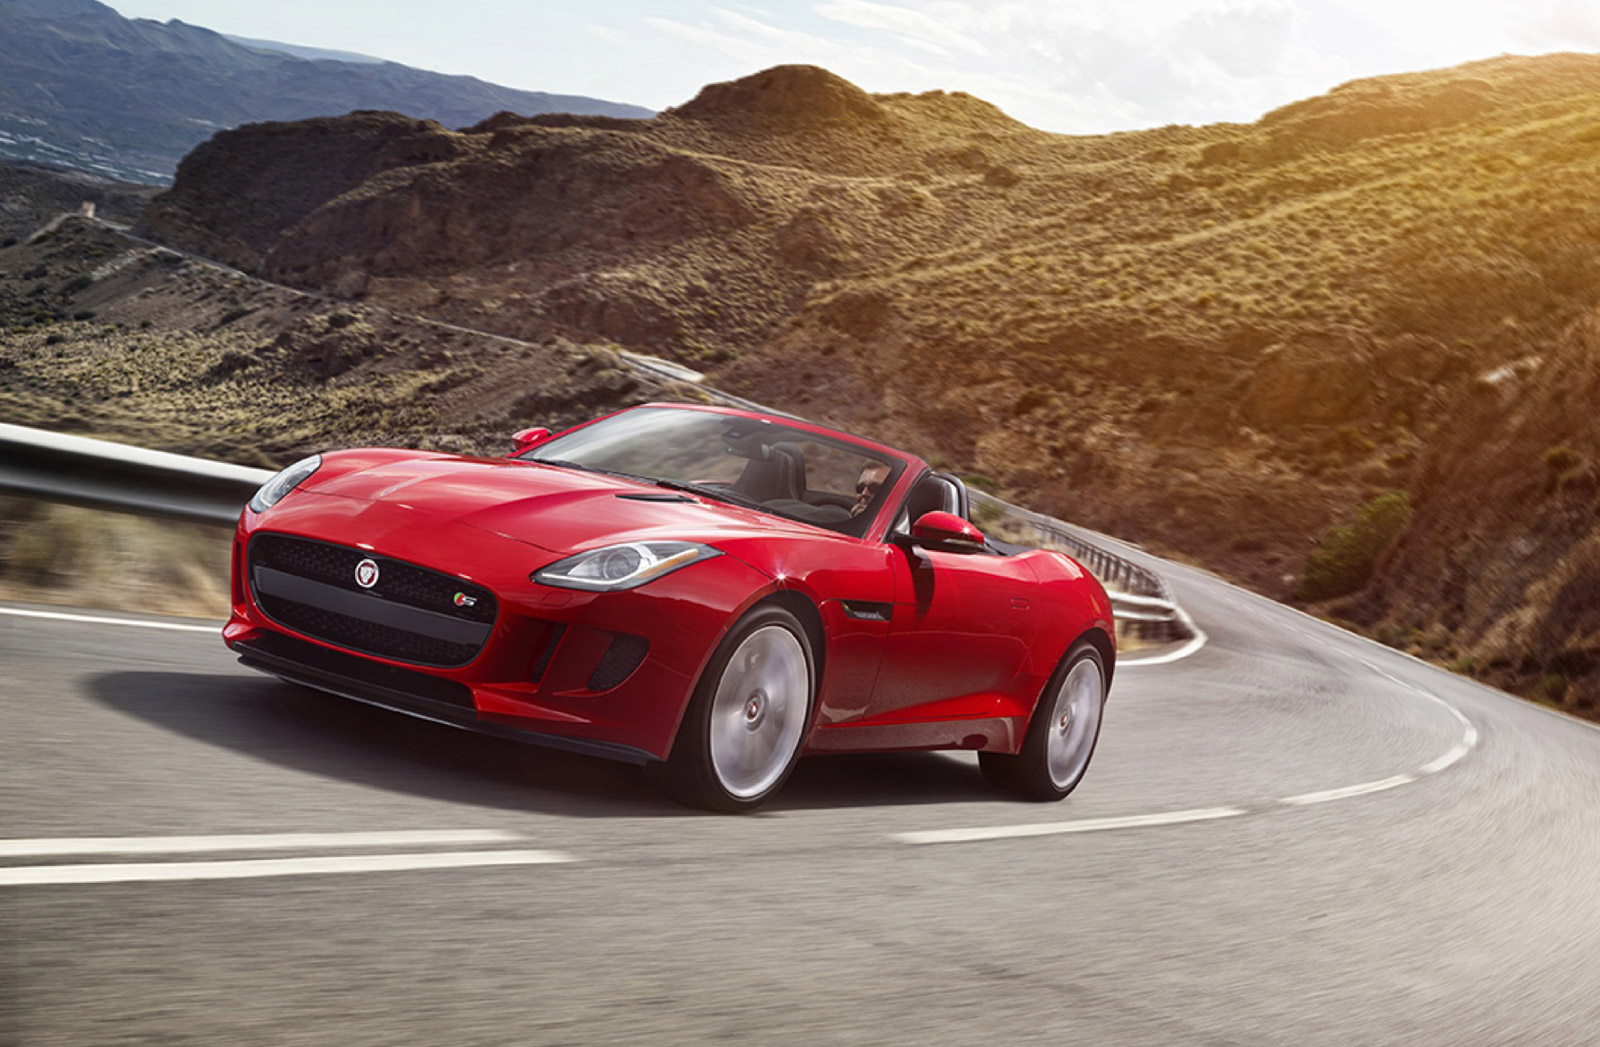 jaguar f type recalled for passenger airbag risk. Black Bedroom Furniture Sets. Home Design Ideas